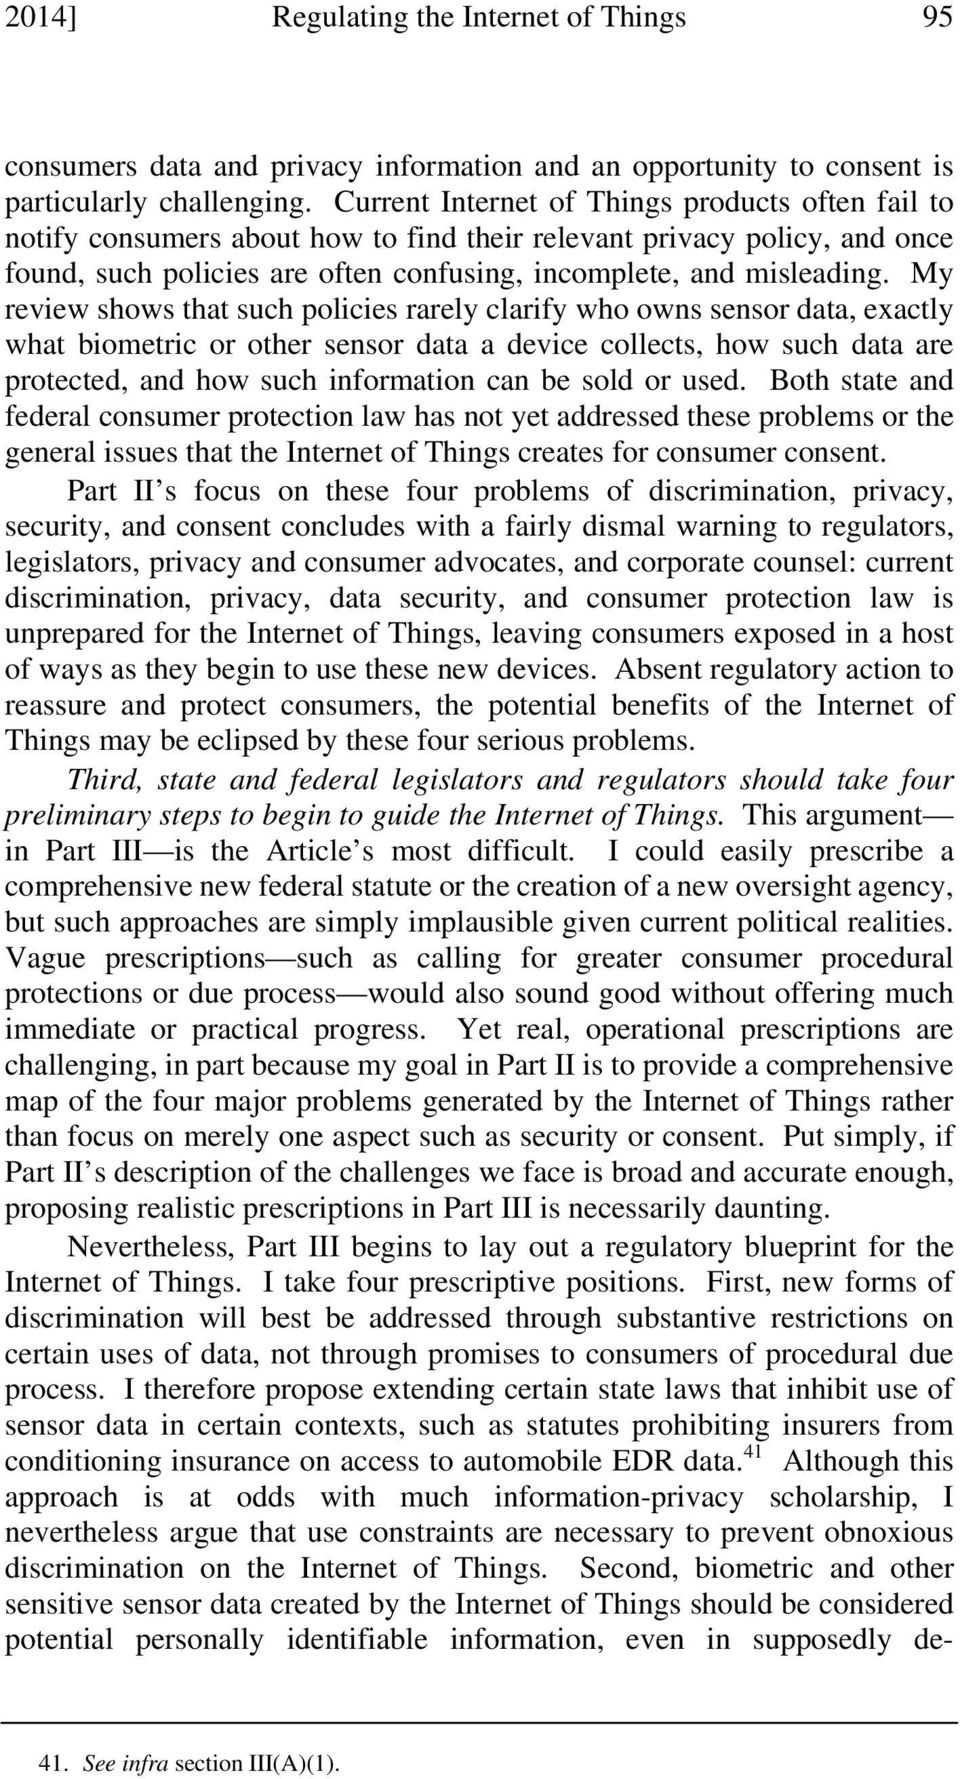 My review shows that such policies rarely clarify who owns sensor data, exactly what biometric or other sensor data a device collects, how such data are protected, and how such information can be